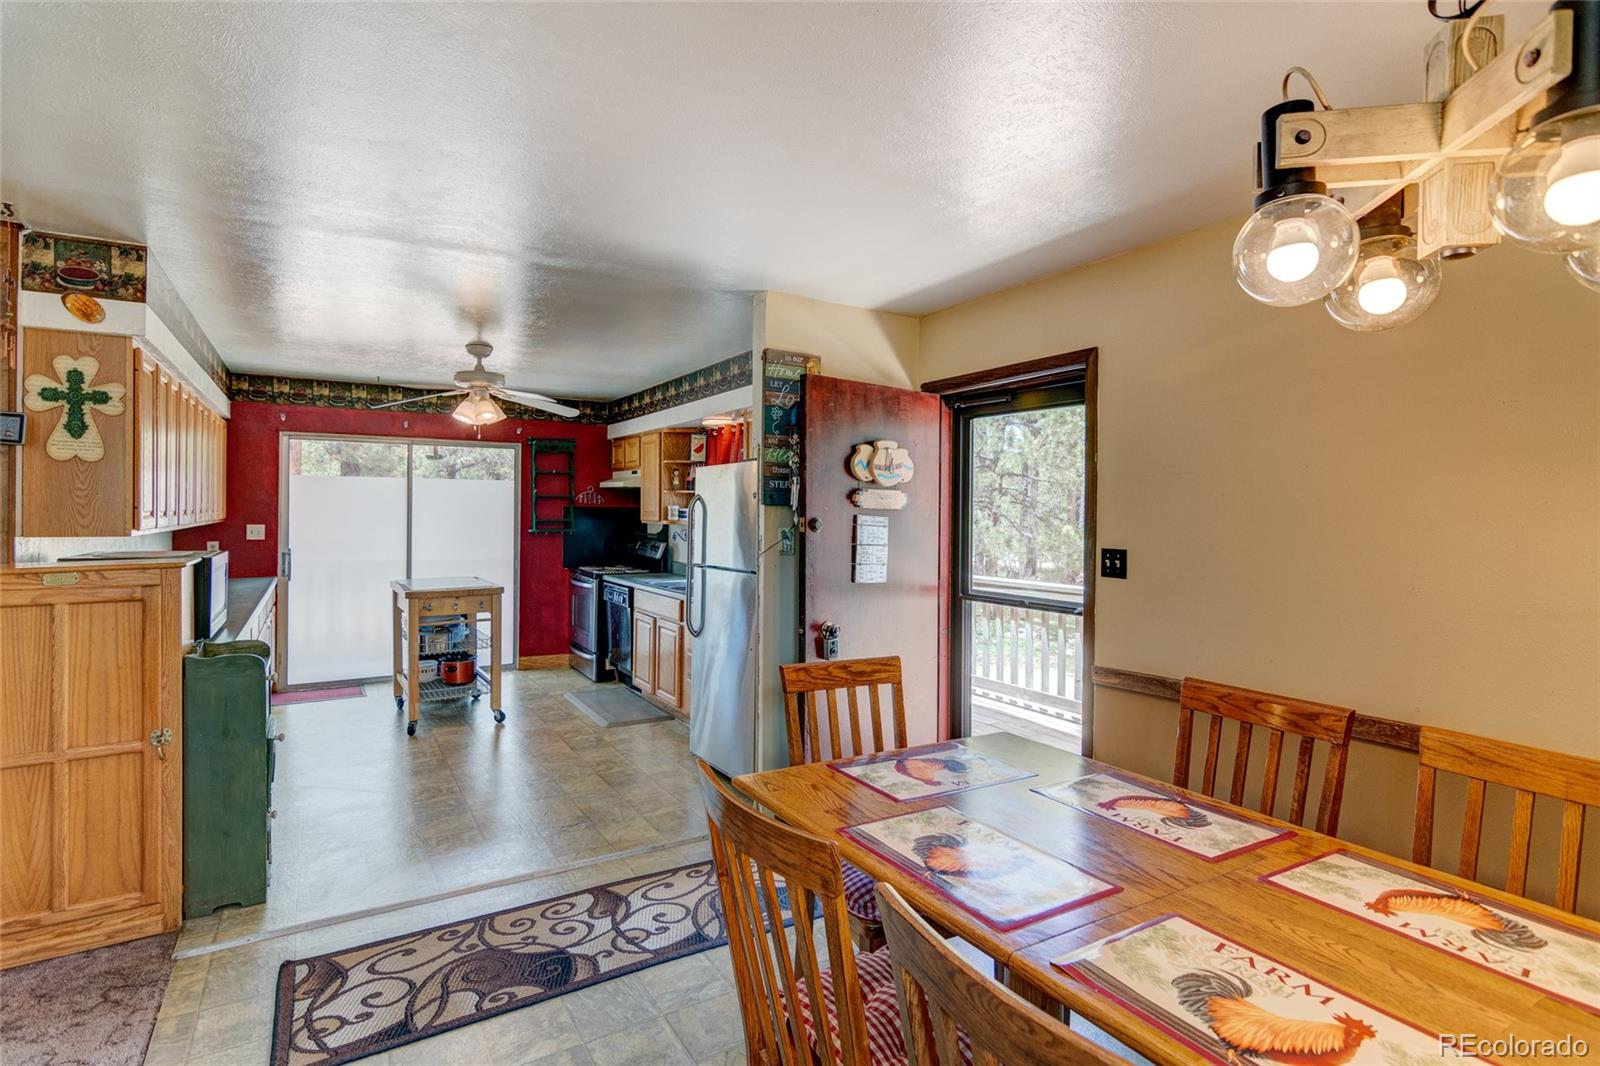 MLS# 7974554 - 7 - 810 Tincup Terrace, Bailey, CO 80421